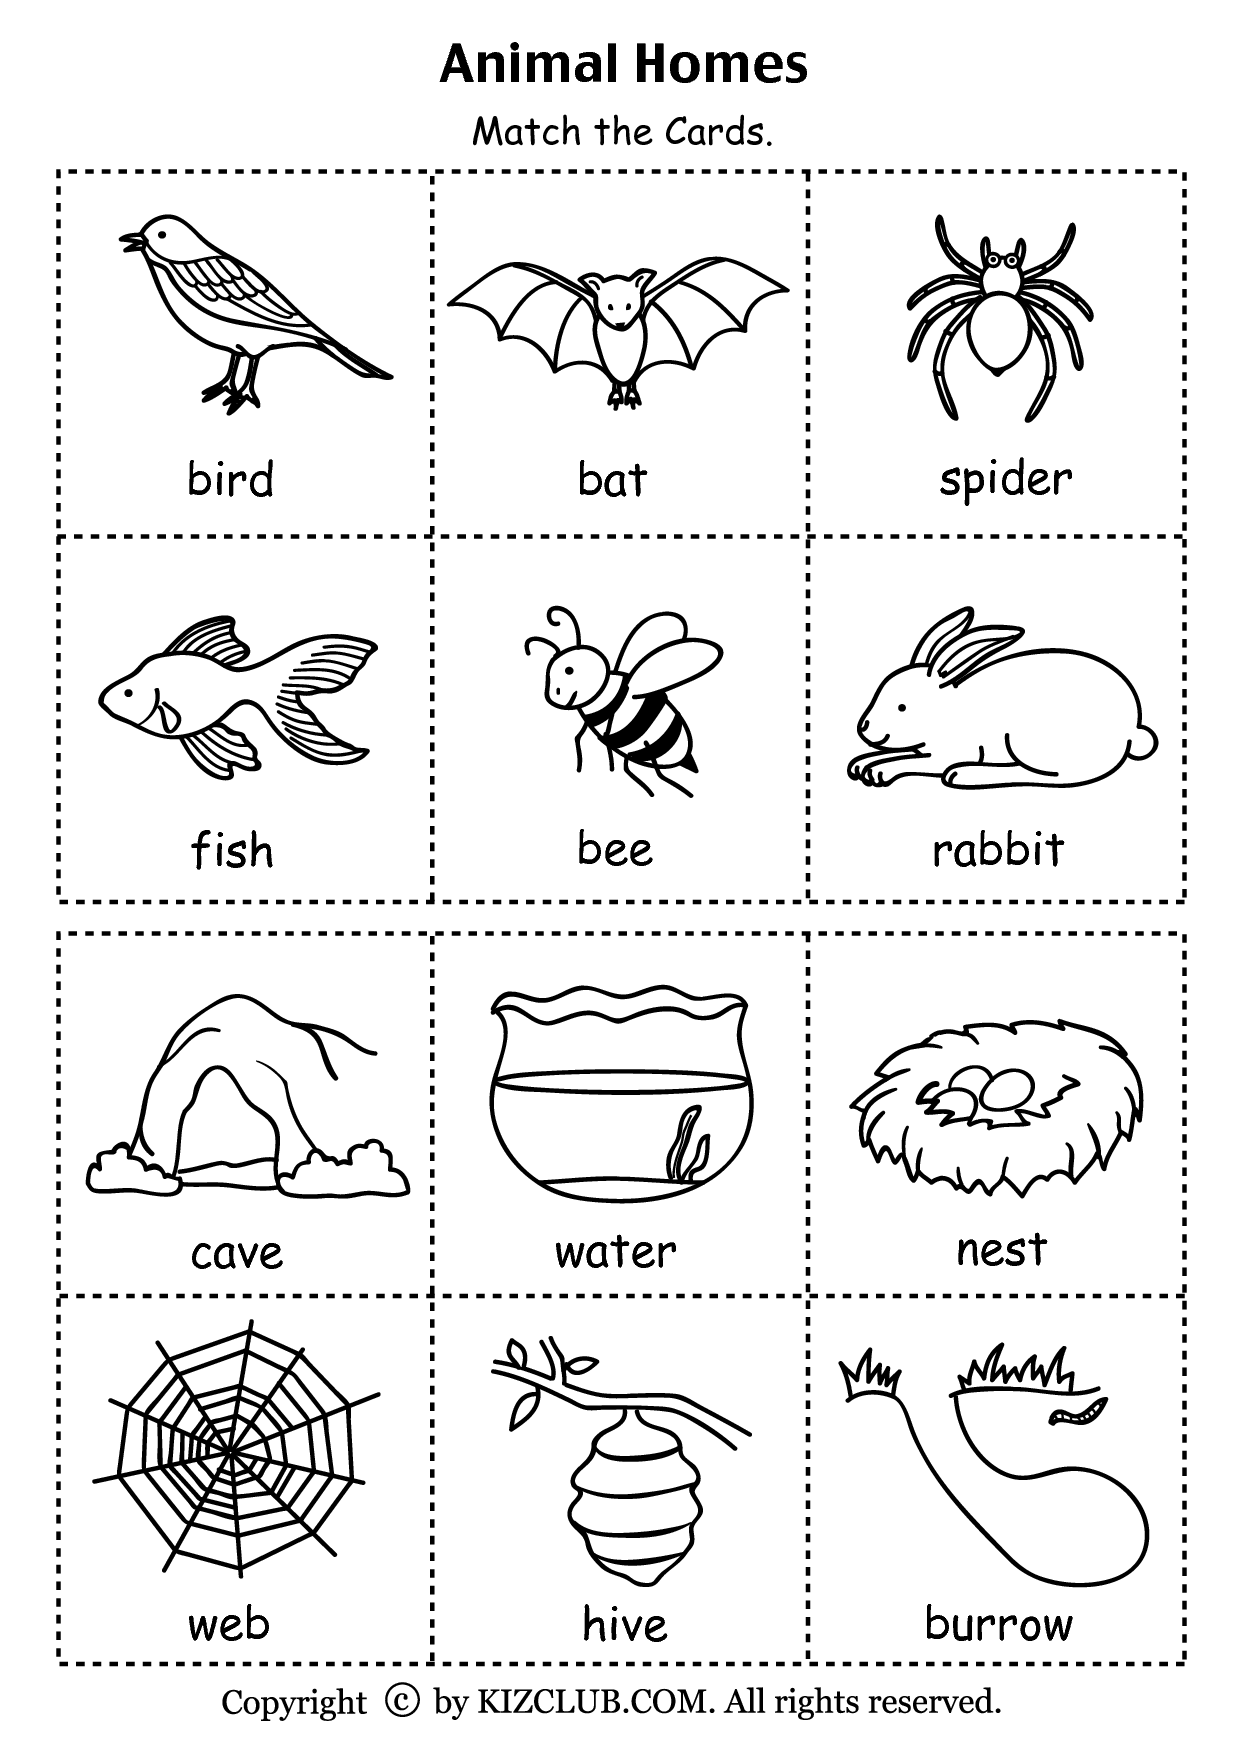 Worksheets Animal Habitats Worksheets animal homes pdf stuff to buy pinterest worksheets and pdf